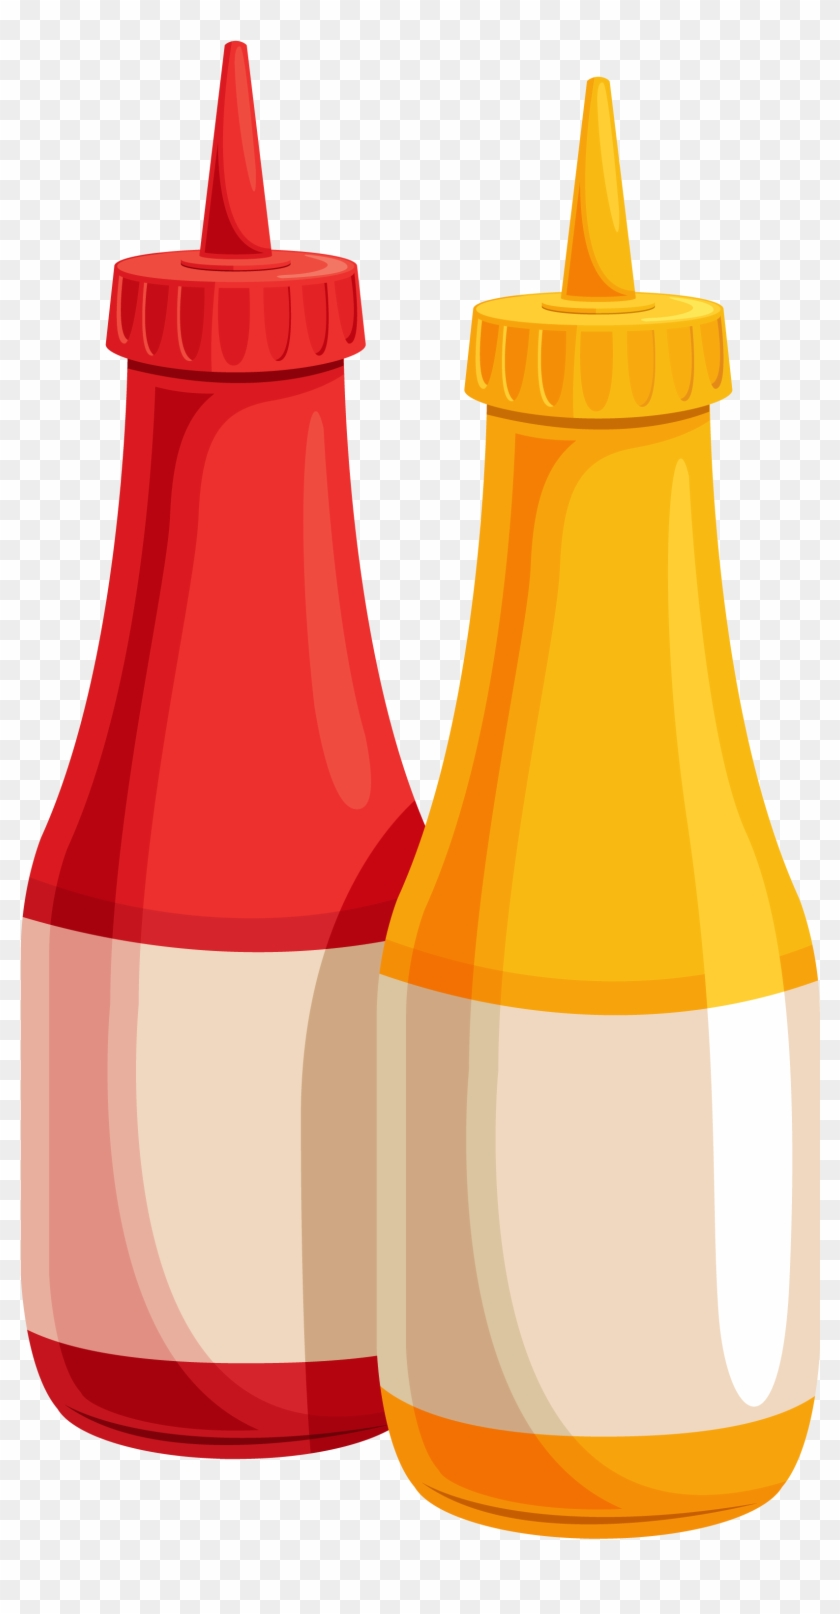 Ketchup And Mustard Bottles Png Clipart Image - Ketchup And Mustard Bottles Png Clipart Image #104788